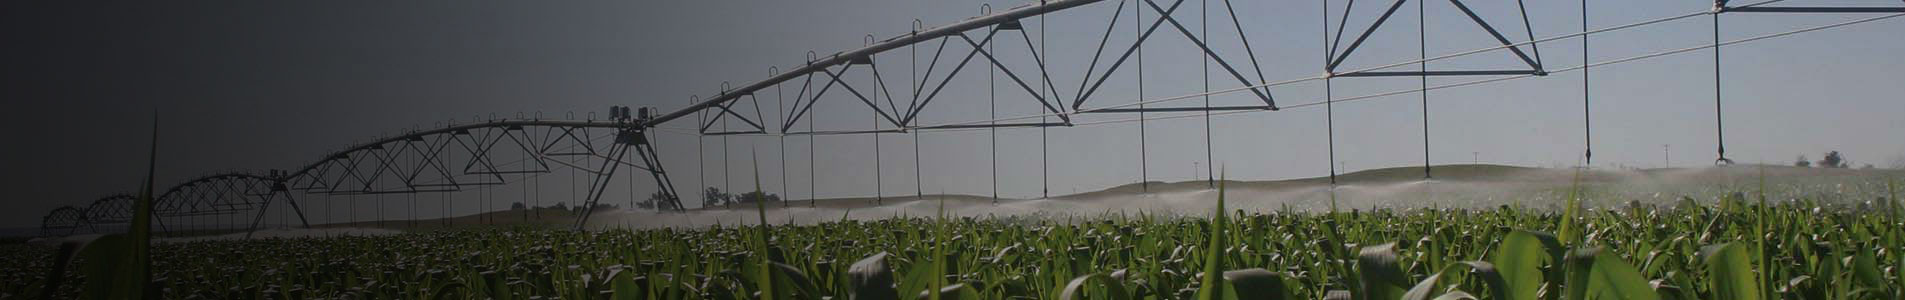 valley water application management irrigation technology solutions